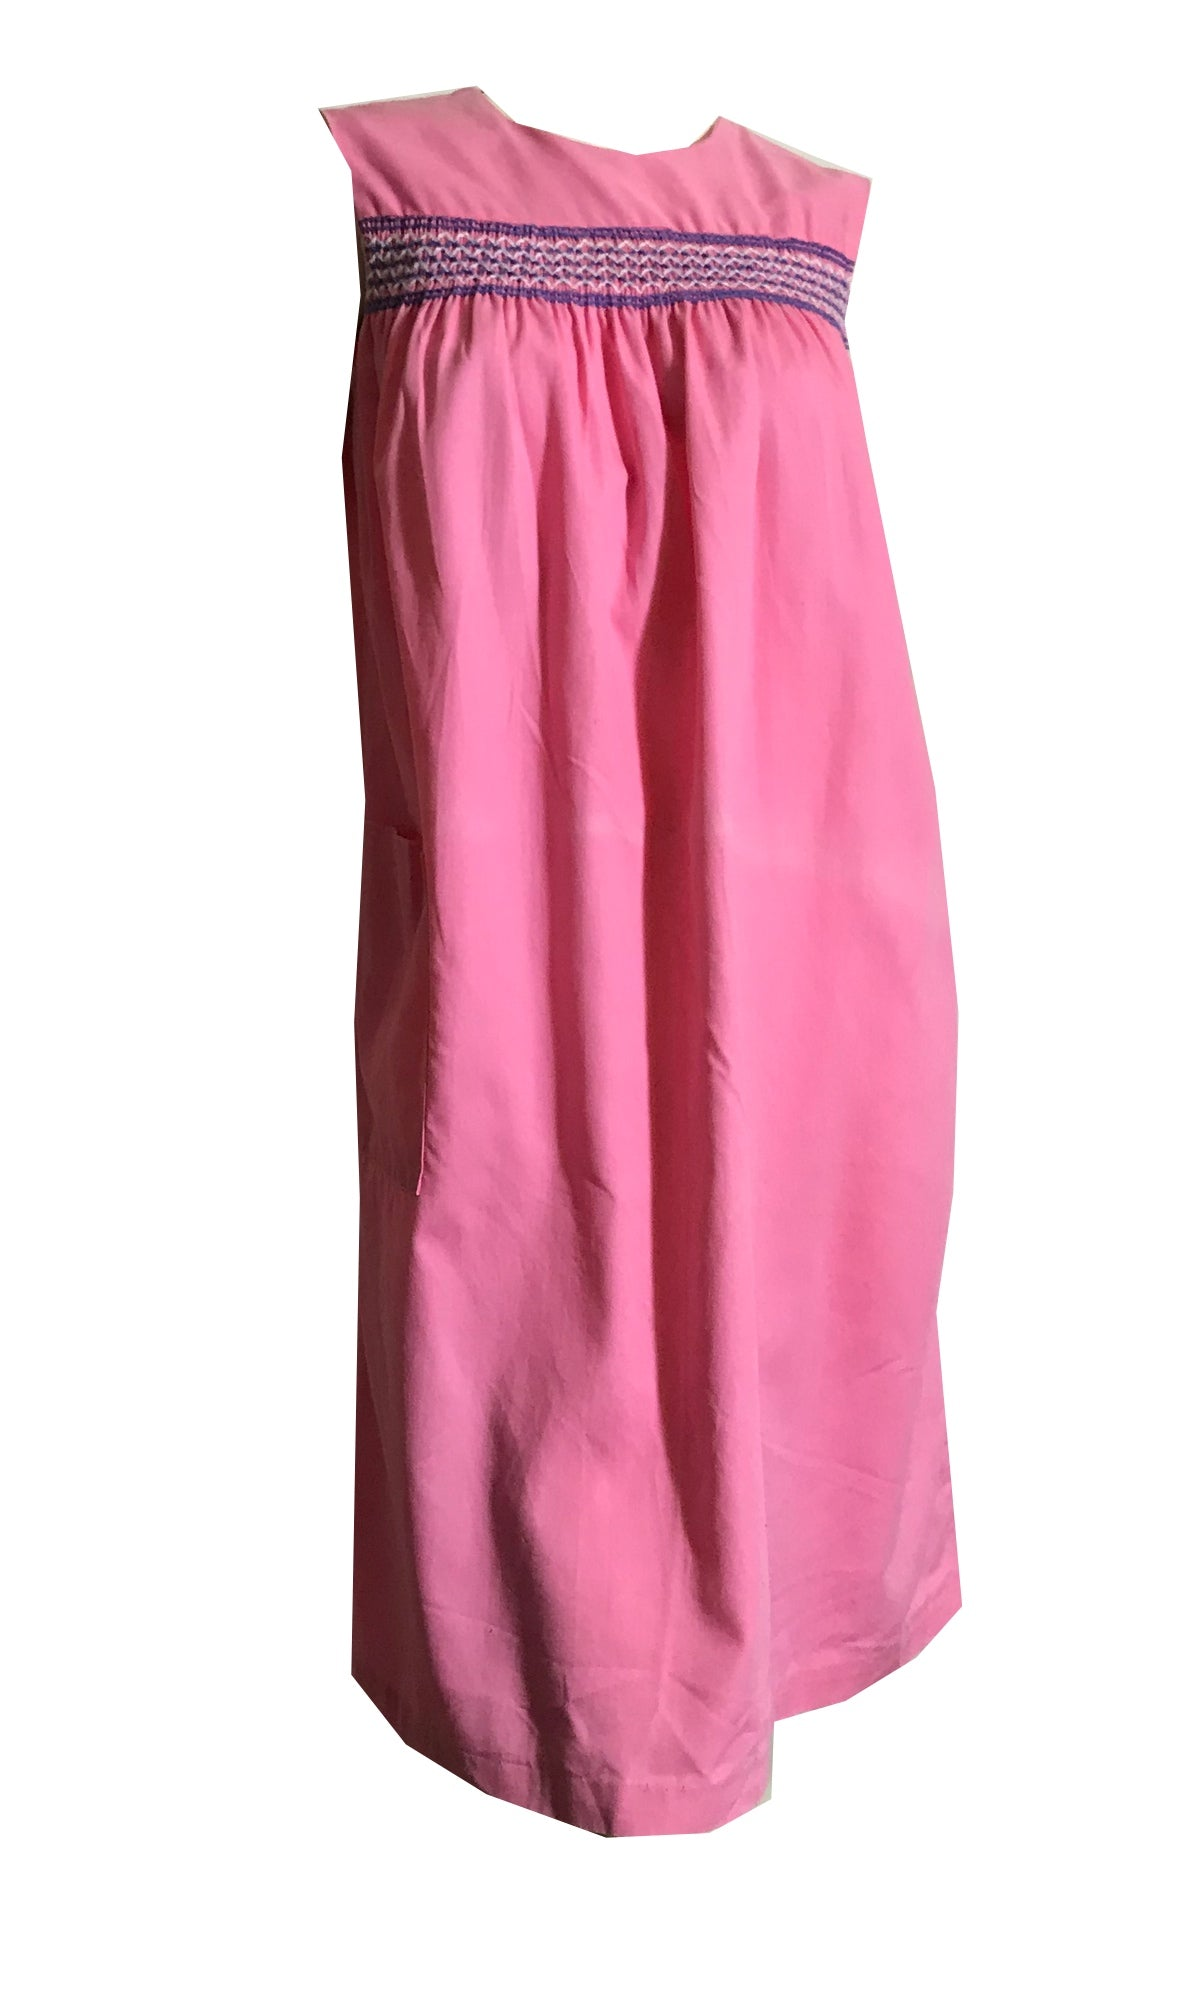 Pretty Pink Cotton Shift Dress circa 1960s